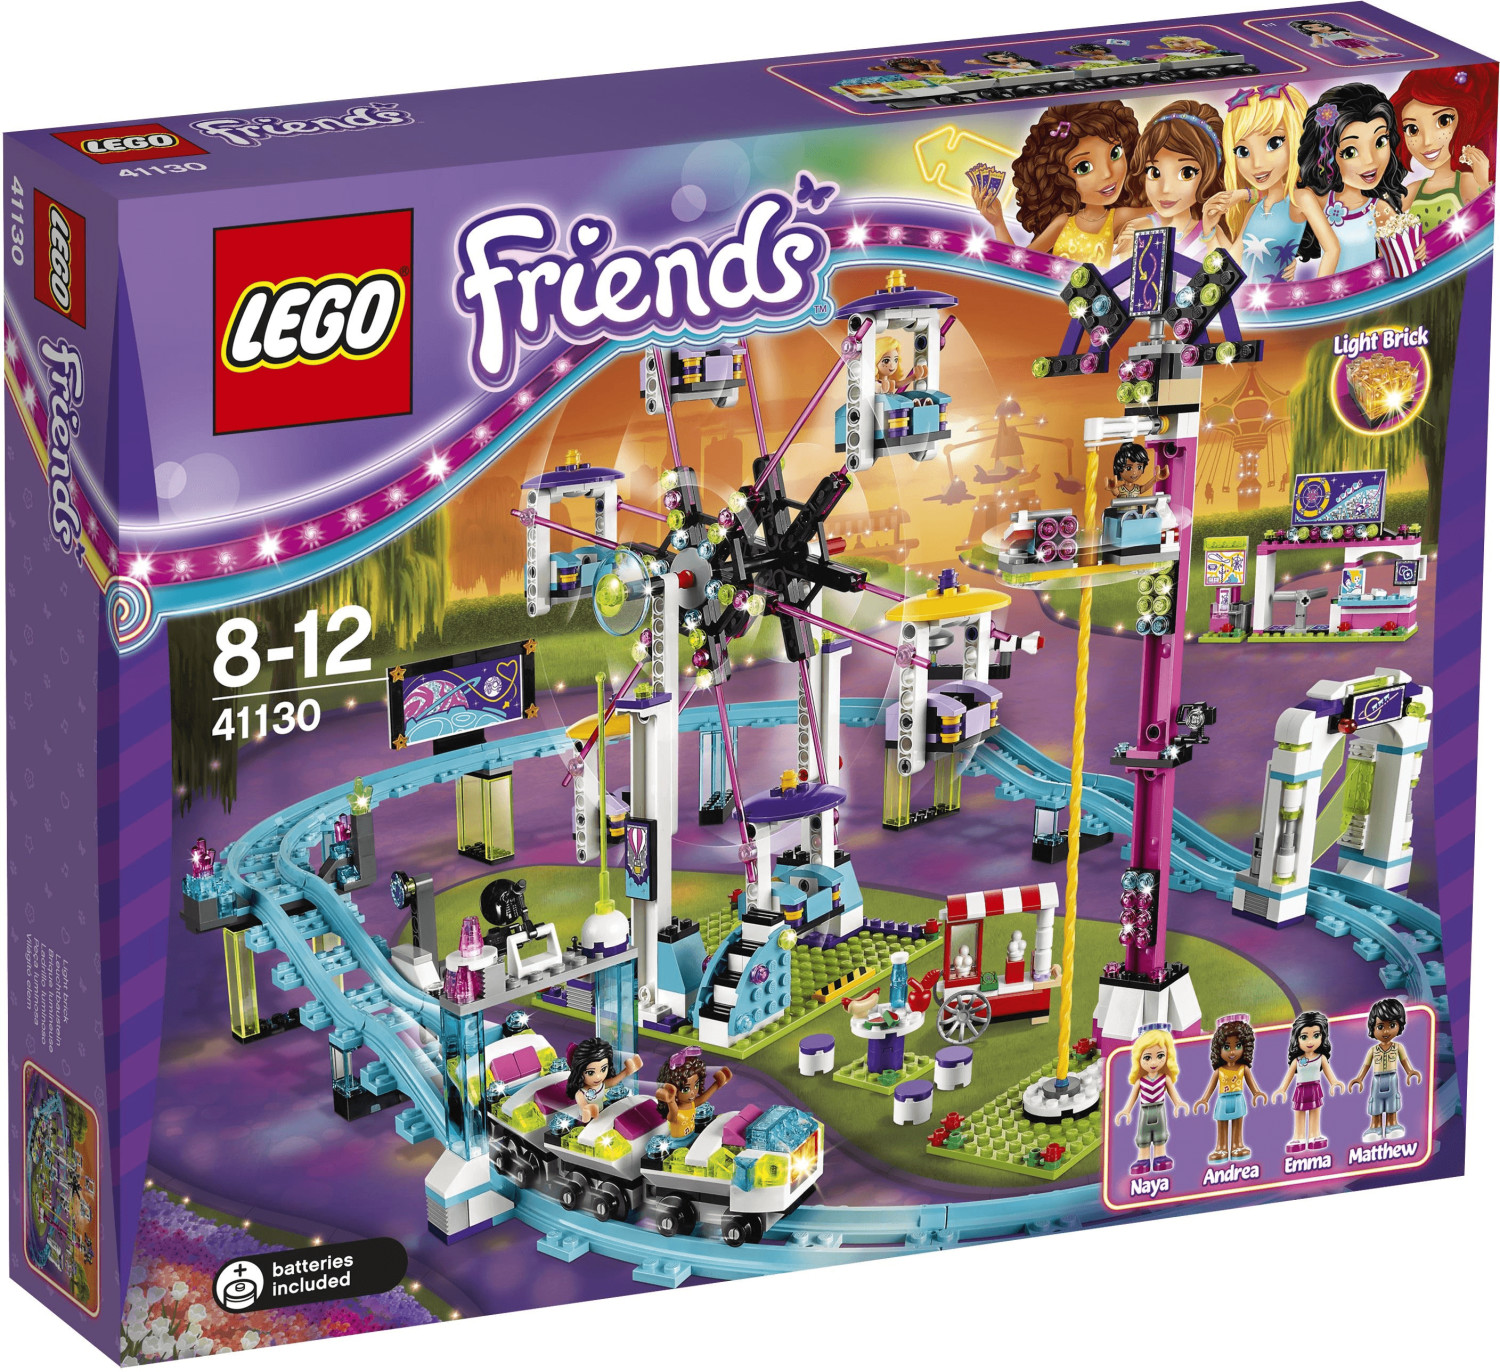 LEGO Friends - Les montagnes russes du parc d'attractions (41130)